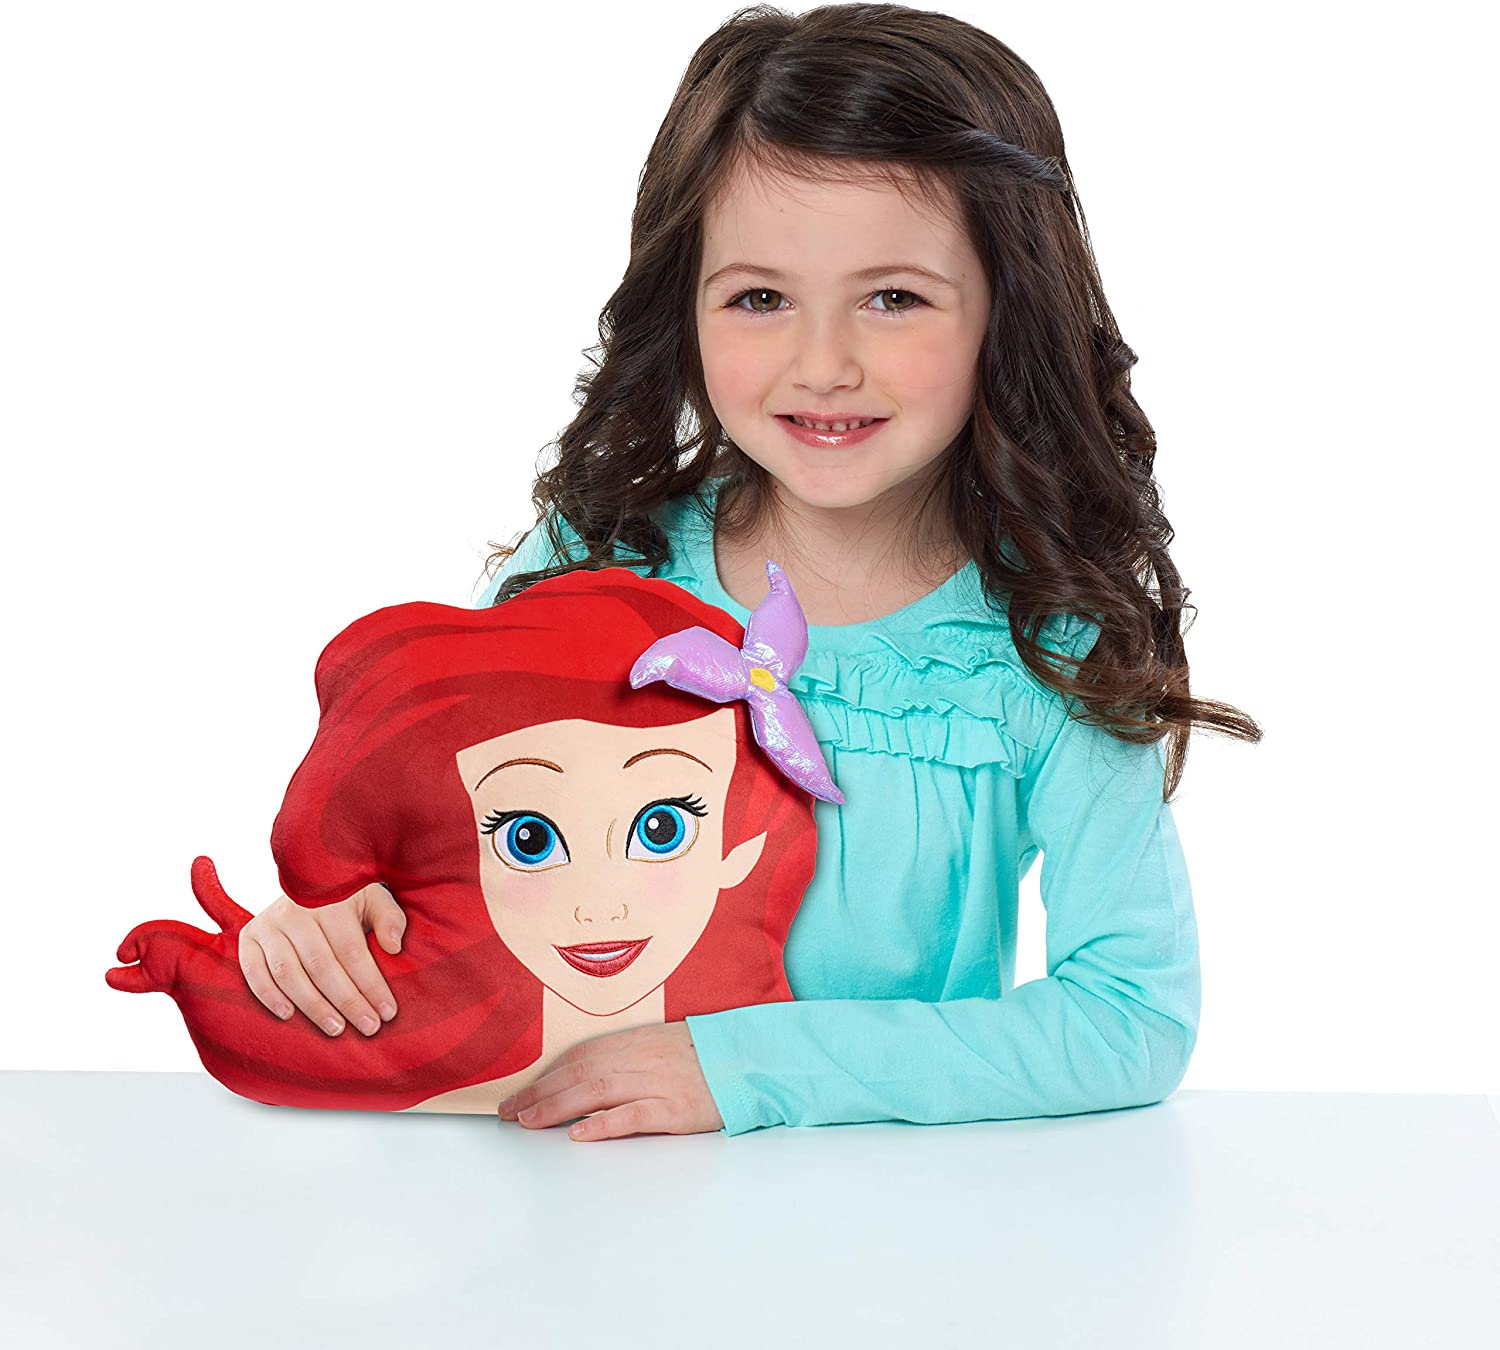 Disney Princess Character Head 12.5-Inch Plush Ariel The Little Mermaid Soft Pillow Buddy Toy for Kids